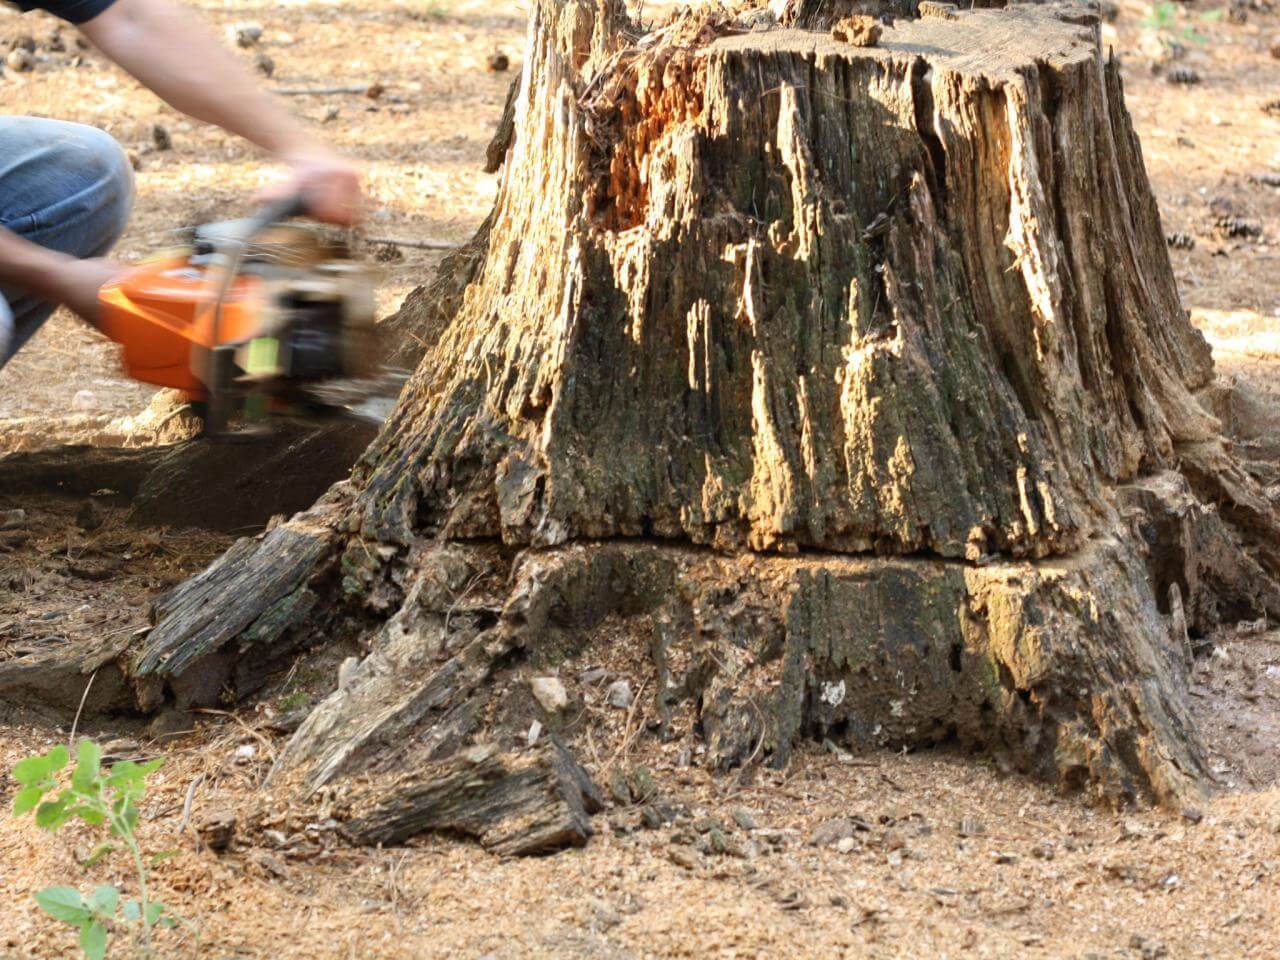 Stump Removal-San Marcos CA Tree Trimming and Stump Grinding Services-We Offer Tree Trimming Services, Tree Removal, Tree Pruning, Tree Cutting, Residential and Commercial Tree Trimming Services, Storm Damage, Emergency Tree Removal, Land Clearing, Tree Companies, Tree Care Service, Stump Grinding, and we're the Best Tree Trimming Company Near You Guaranteed!